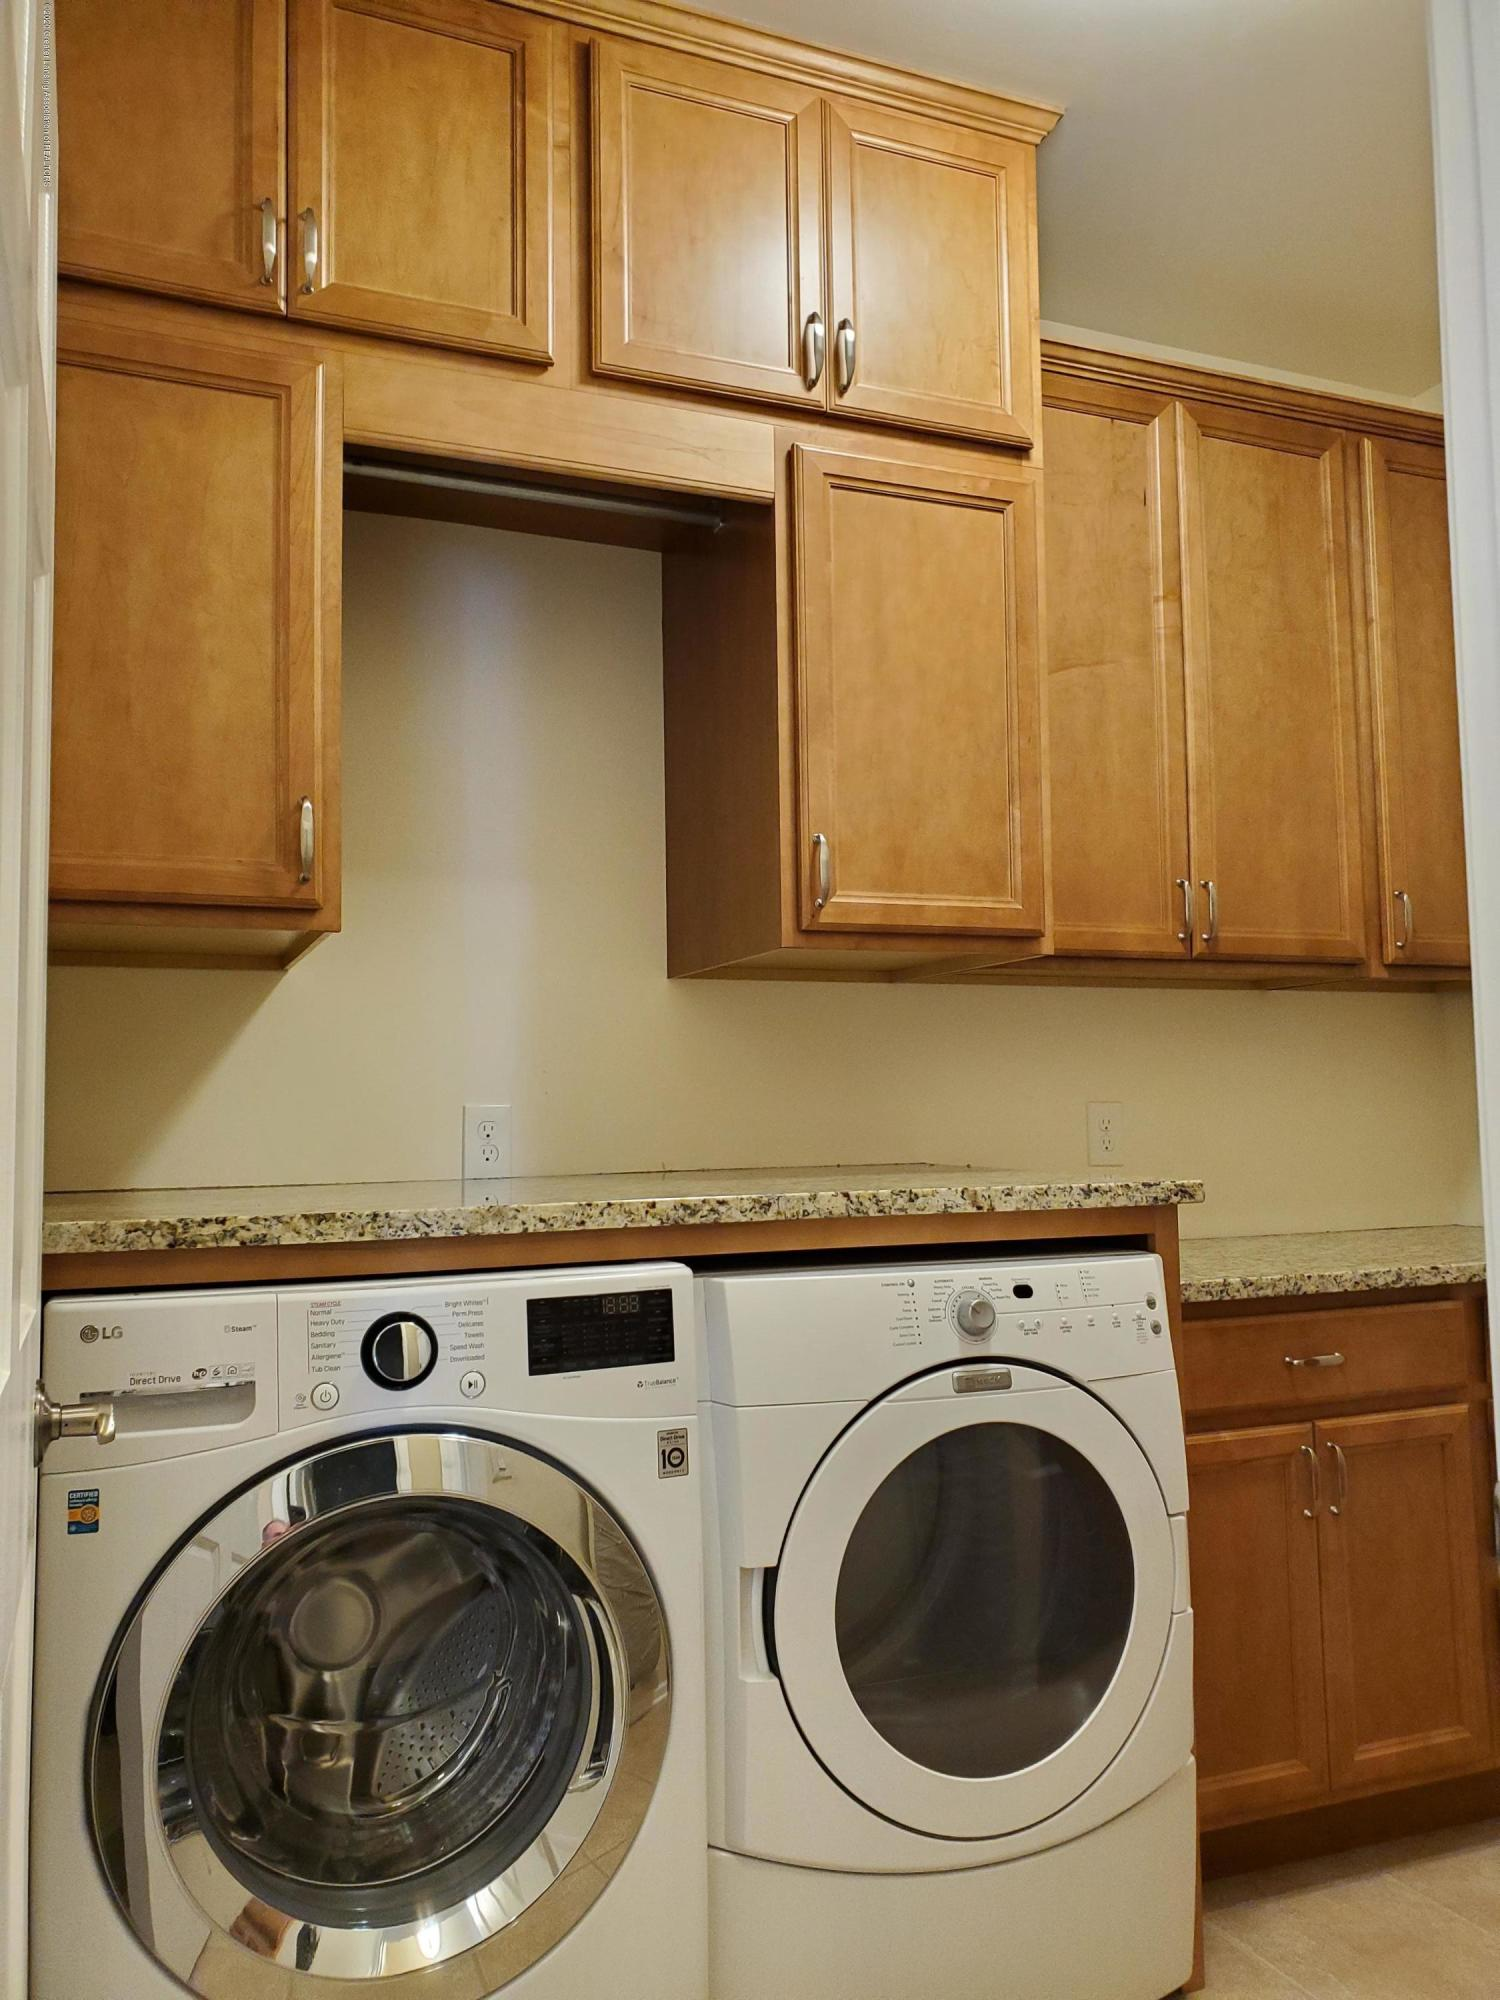 558 N Wheaton Rd - Laundry Room - 22